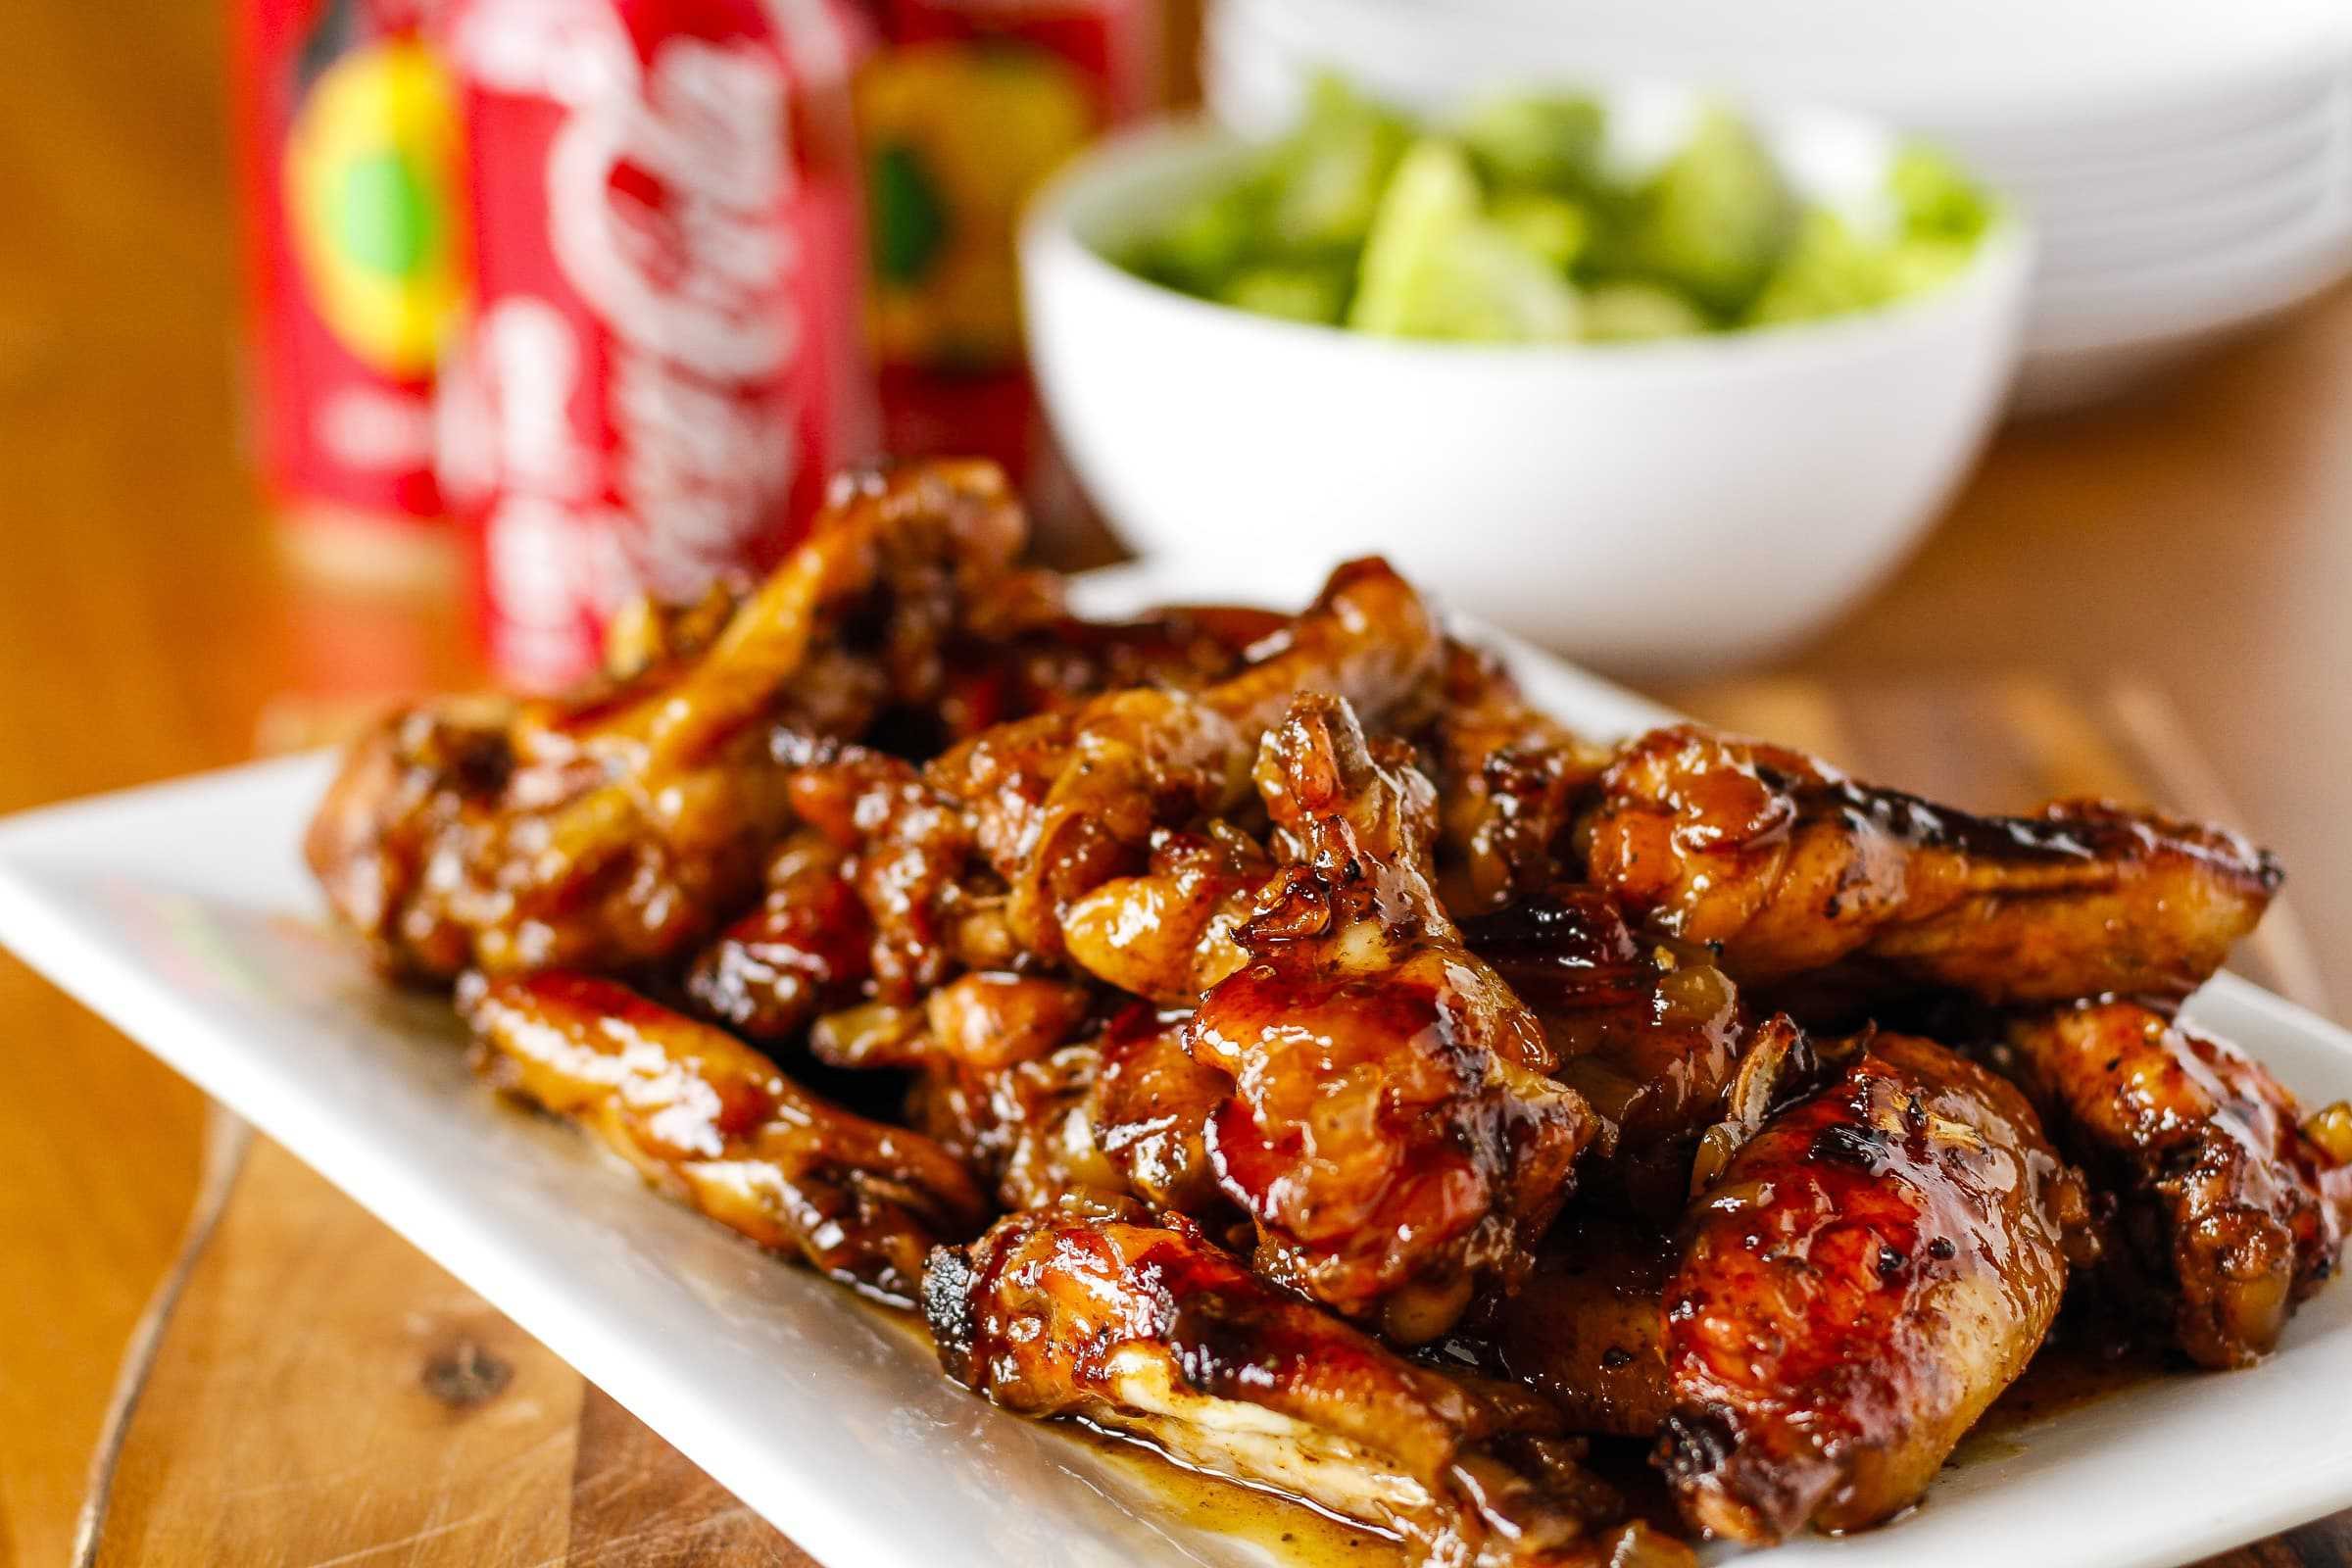 Coca-Cola Baked Chicken Wings | Homemade Chicken Wings Recipes To Die For | Crispy Oven Baked Chicken Wings